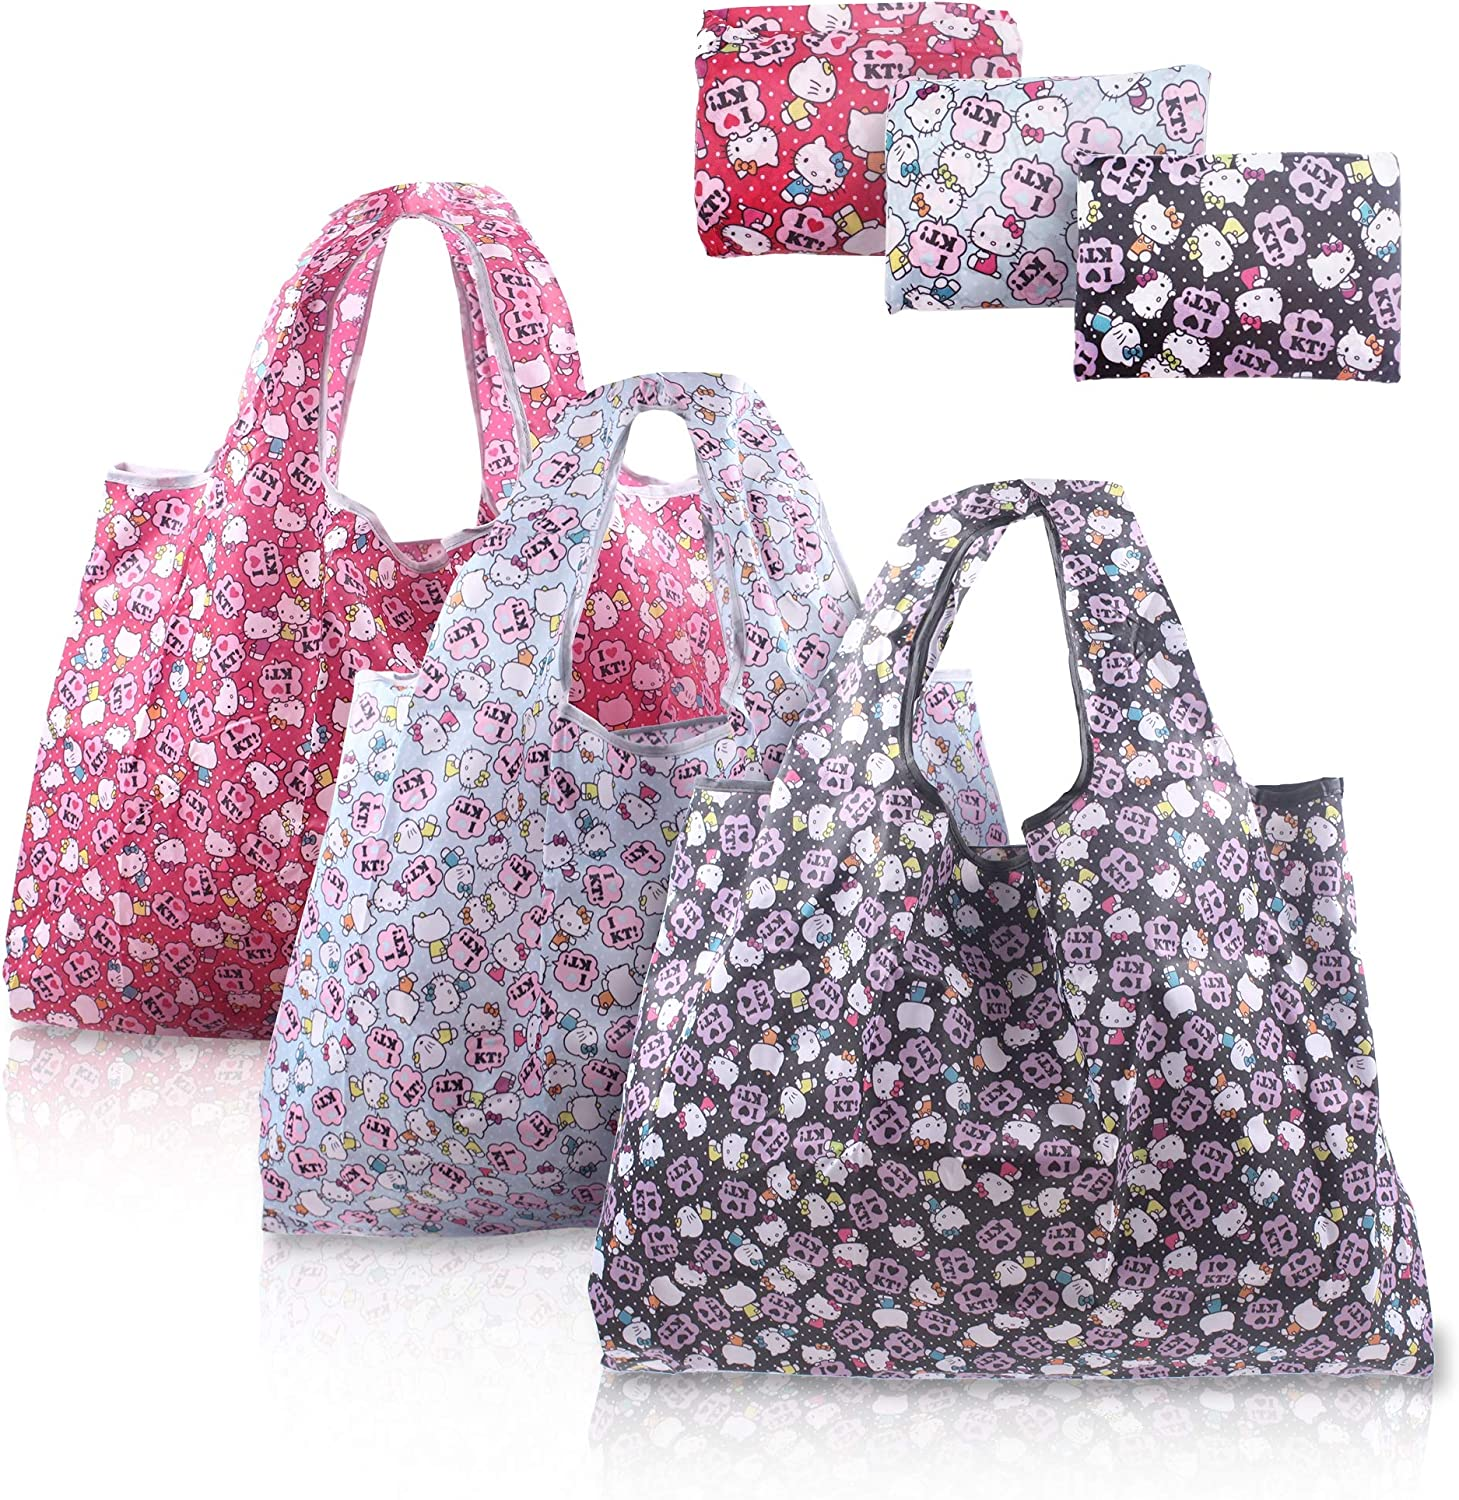 Finex 3 Pcs Set Hello Kitty Foldable Reusable Tote Recycle Shopping Bag lightweight portable large capacity Random Pattern Color